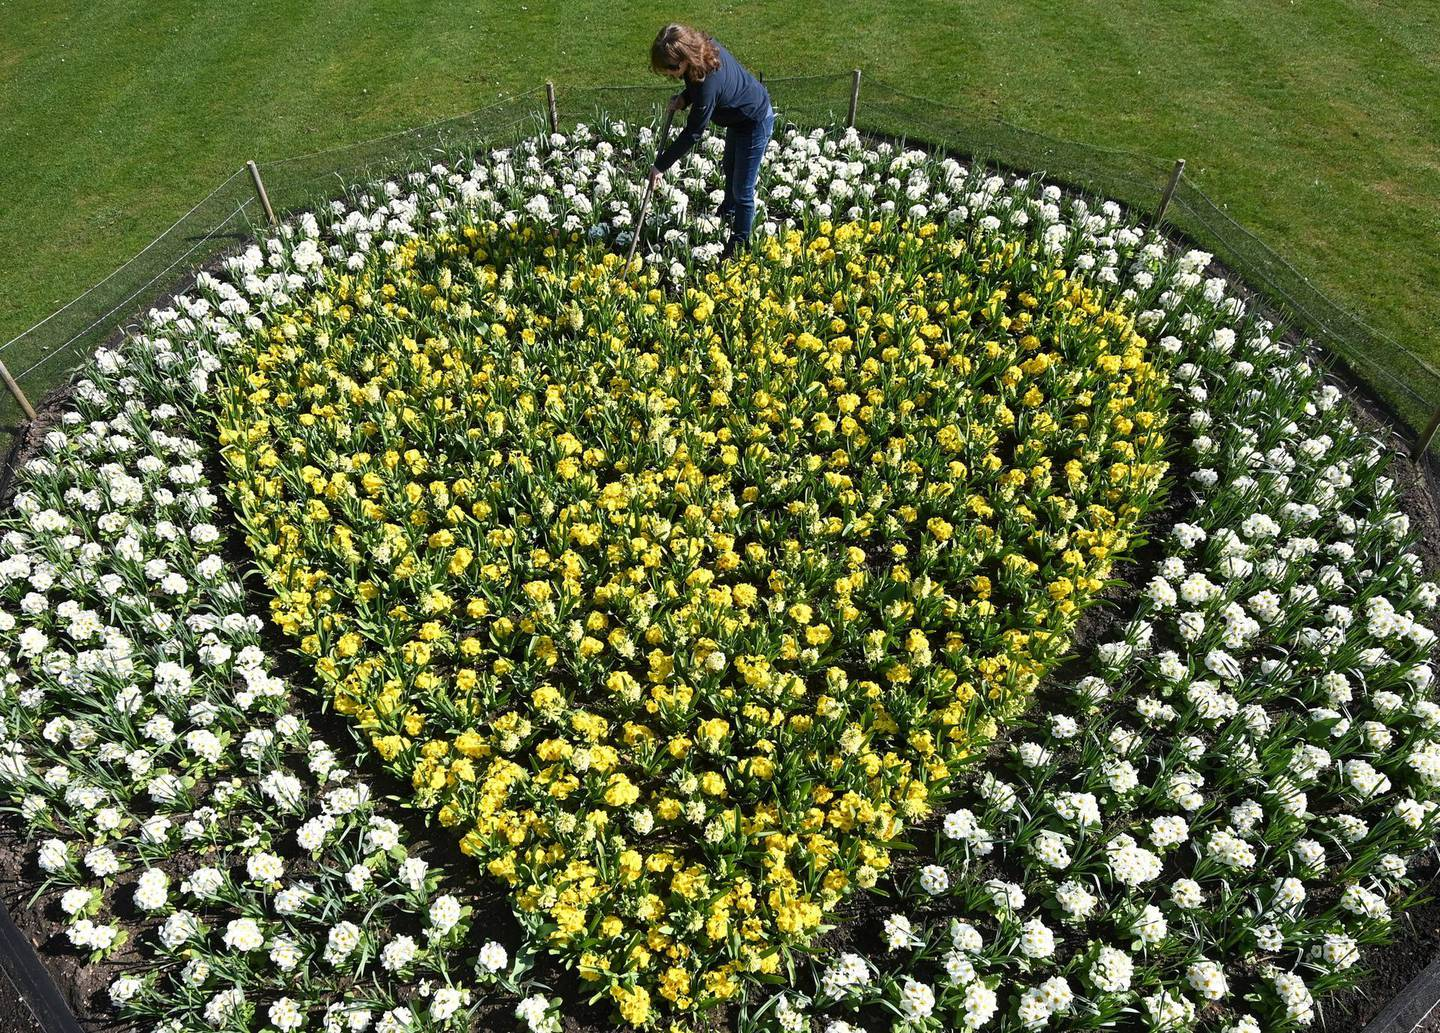 Kew horticulturalist Joanna Bates tends to a 'Yellow Hearts to Remember' planting tribute to remember those lost to COVID-19, a year since the first British lockdown began due to the coronavirus disease pandemic, Royal Botanic Gardens, Kew, London, Britain, March 22, 2021. REUTERS/Toby Melville